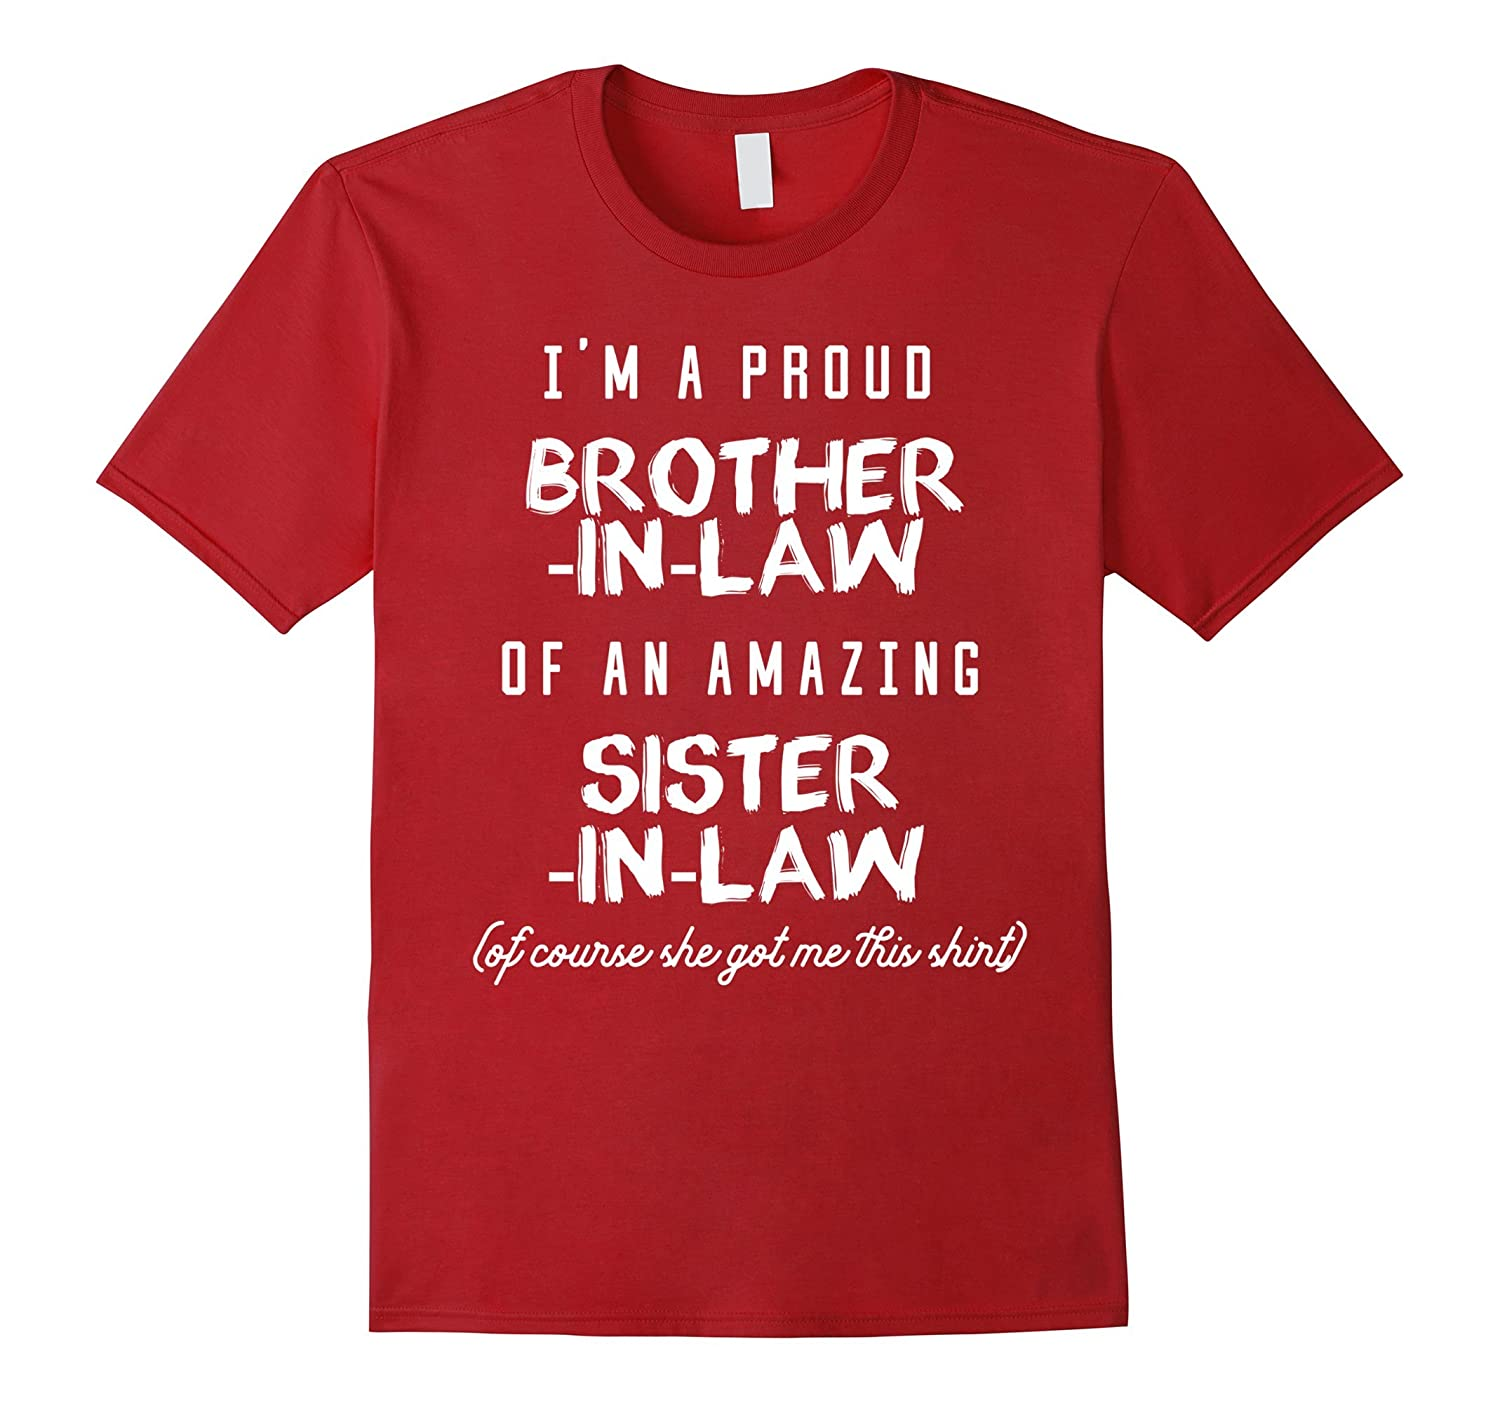 Mens Funny Tee -Proud Brother-in-Law Of An Amazing Sister-in-Law